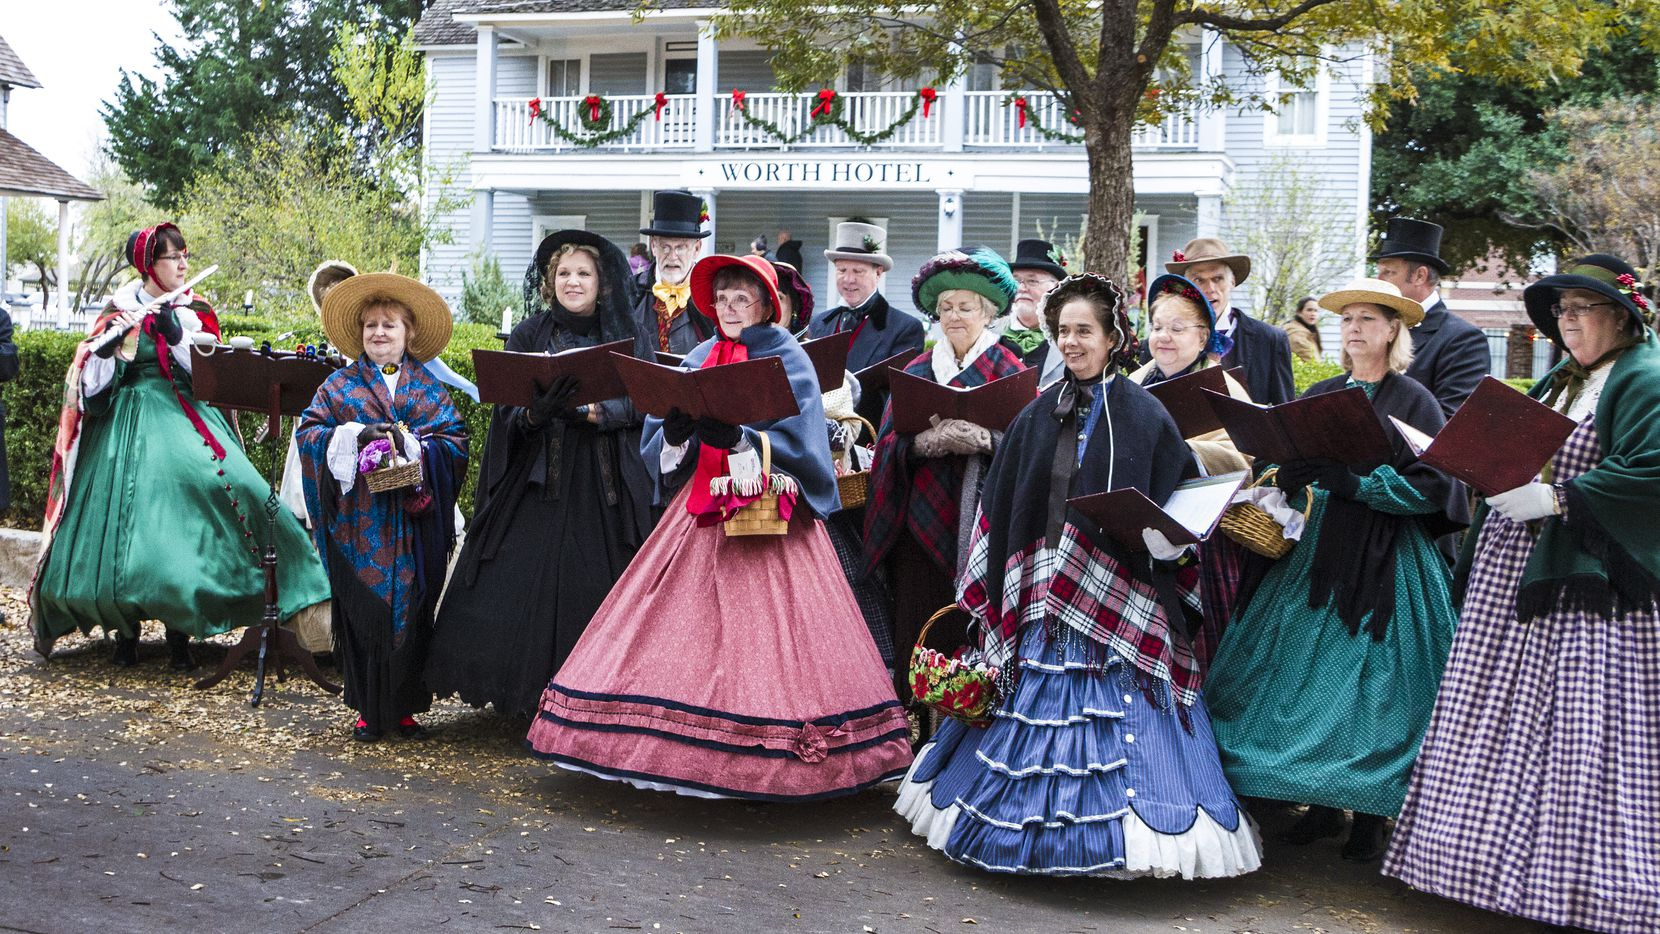 Candlelight at Dallas Heritage Village will feature historic buildings decorated for the holidays, strolling carolers, cooking and blacksmithing demonstrations, toy trains, St. Nicholas, interpreters in traditional costumes, live music and more.